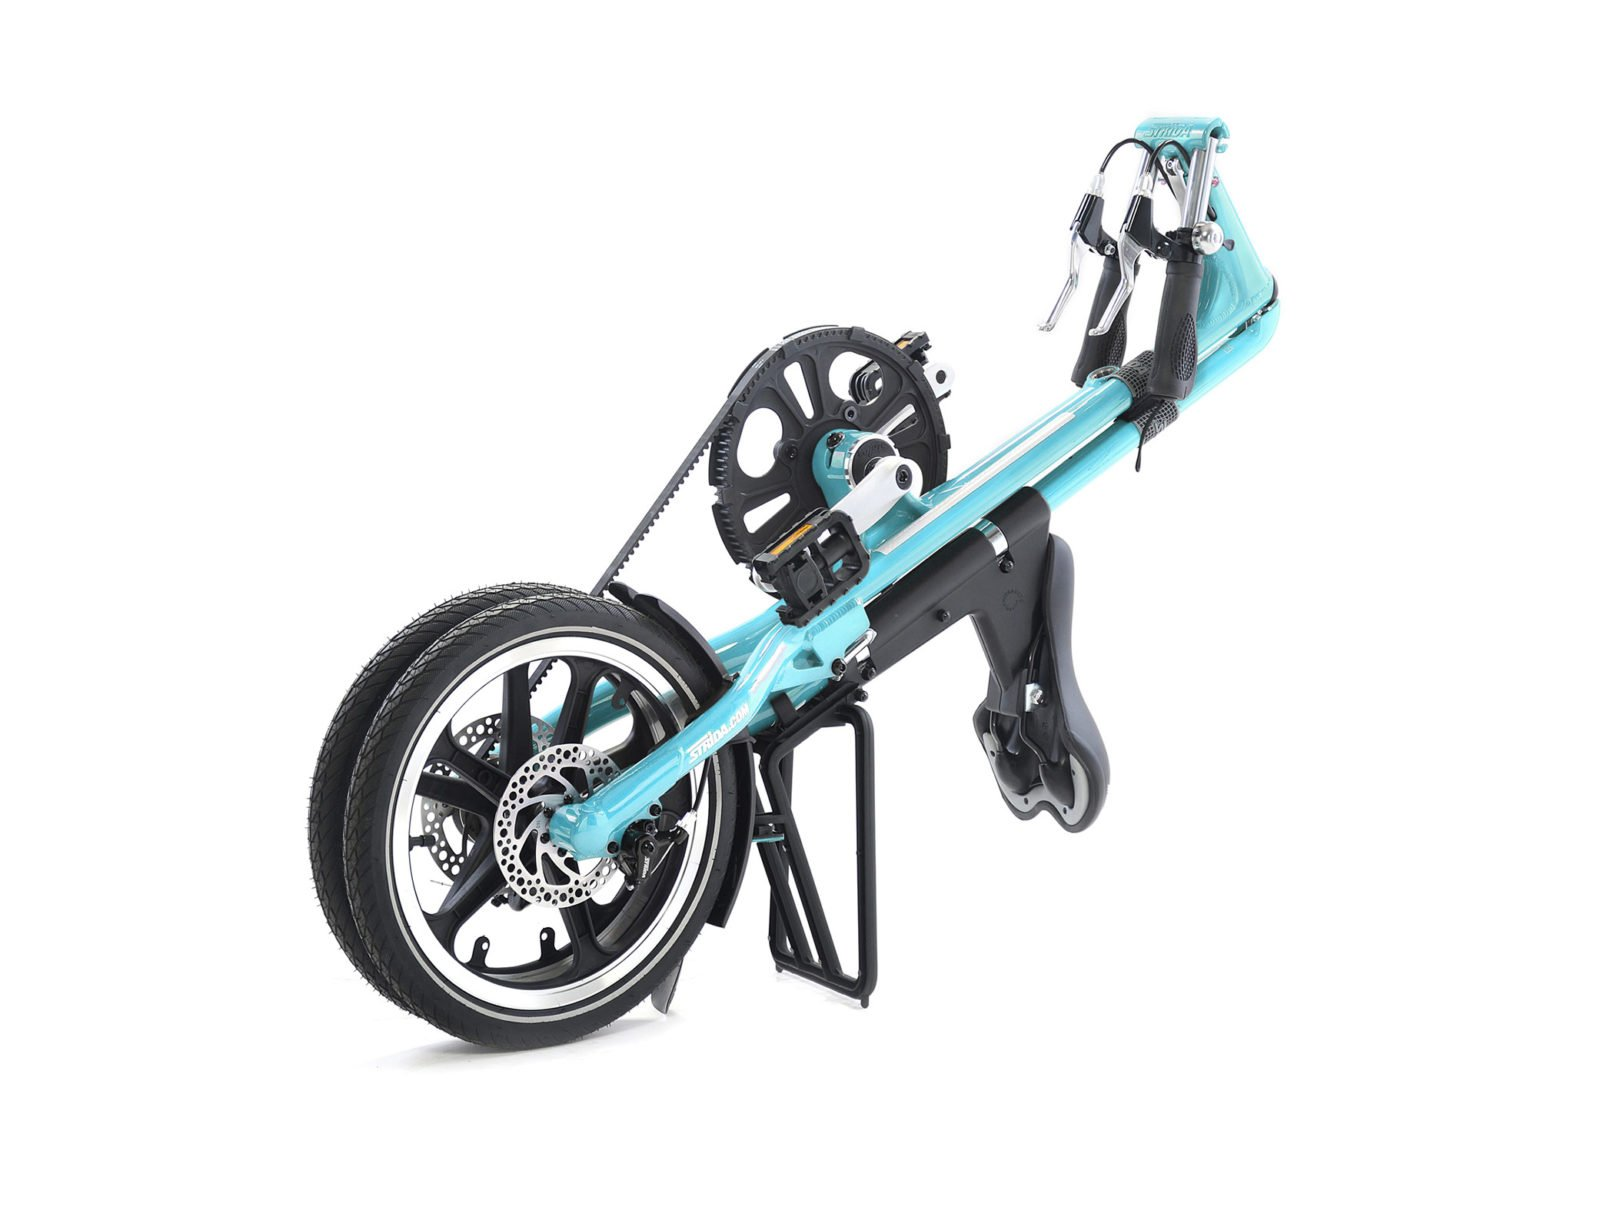 STRiDA LT Folding Bicycle, Turquoise-31737